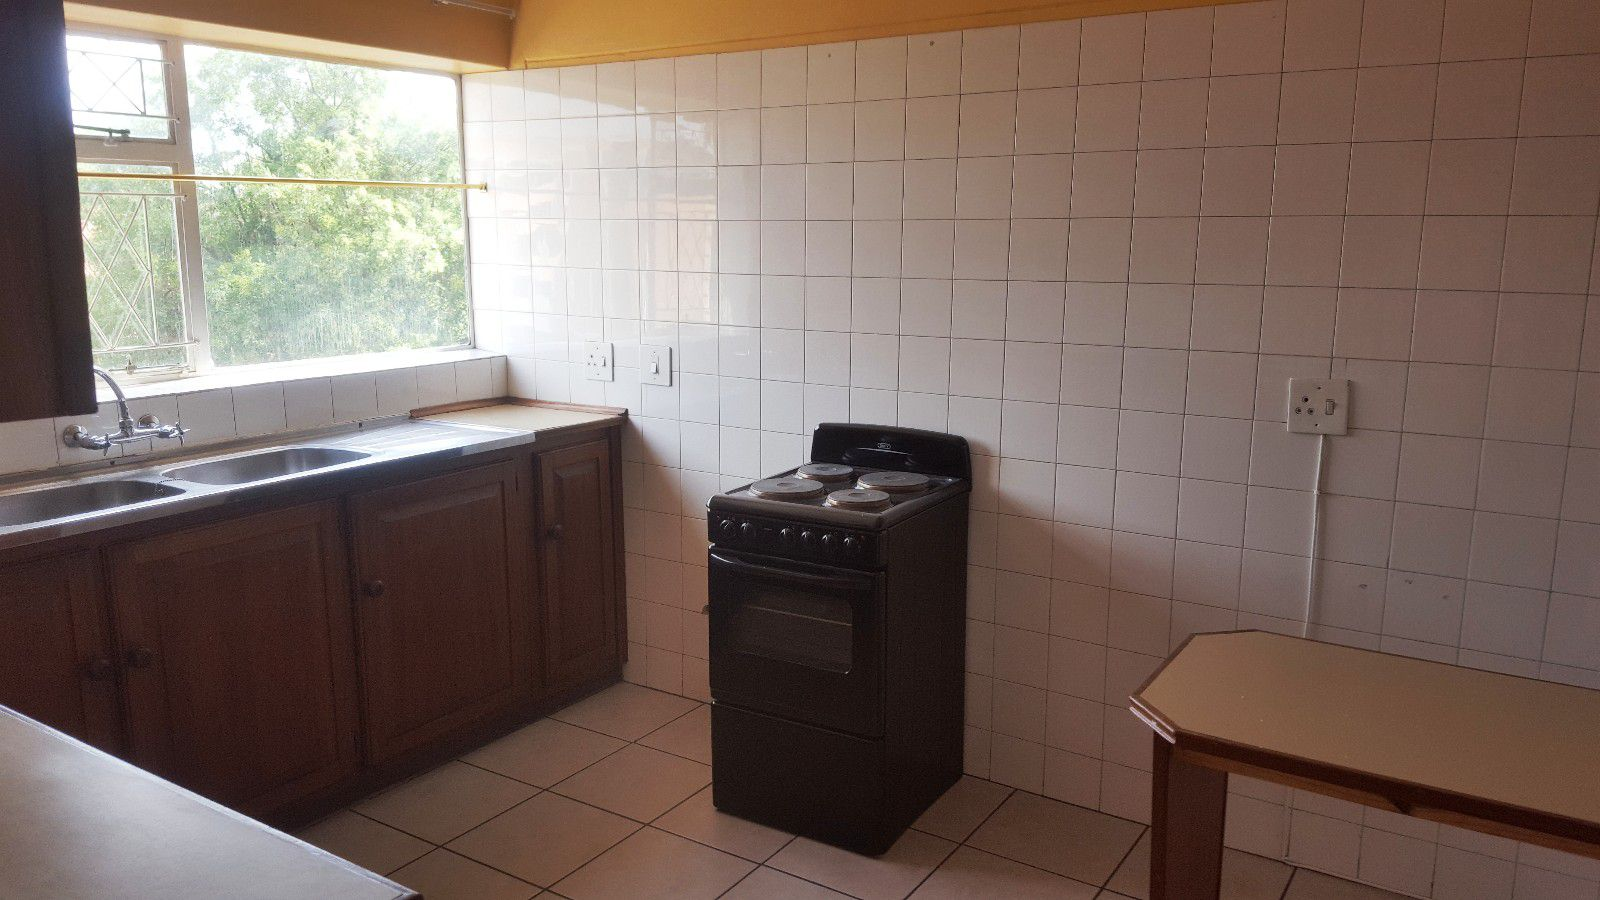 Potchefstroom Central property for sale. Ref No: 13449643. Picture no 5